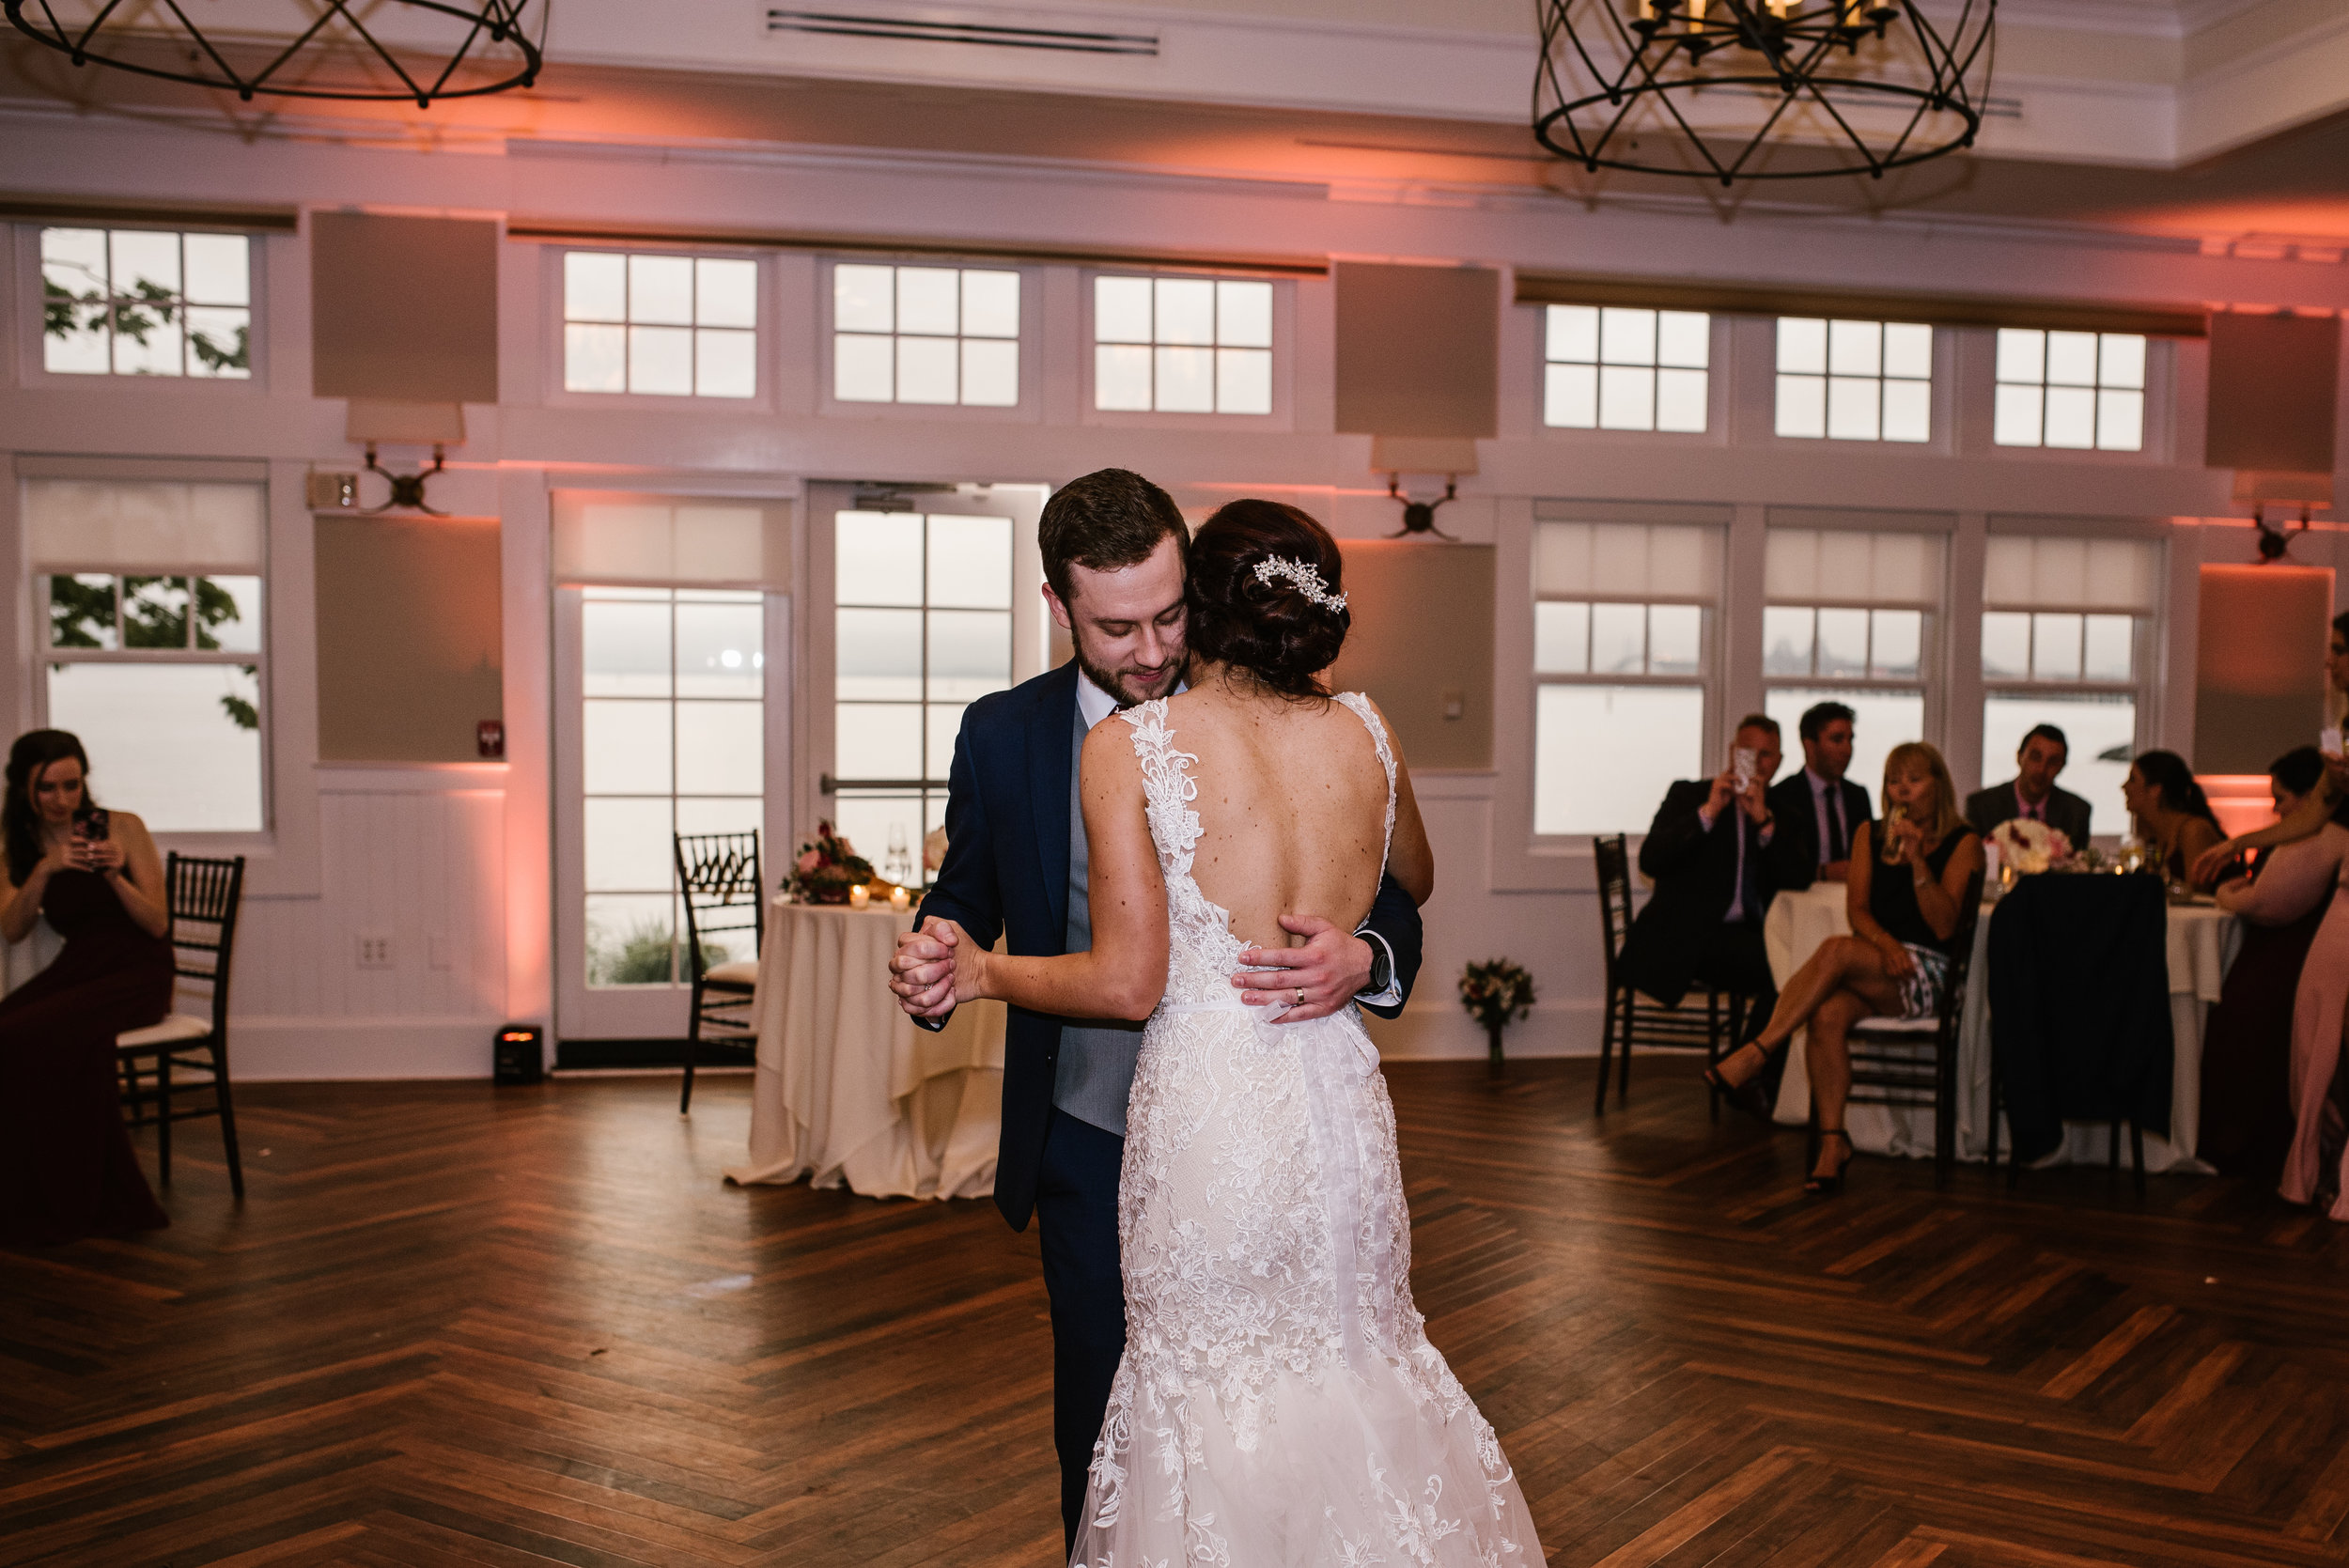 chesapeakebaybeachclubweddingblog-48.jpg